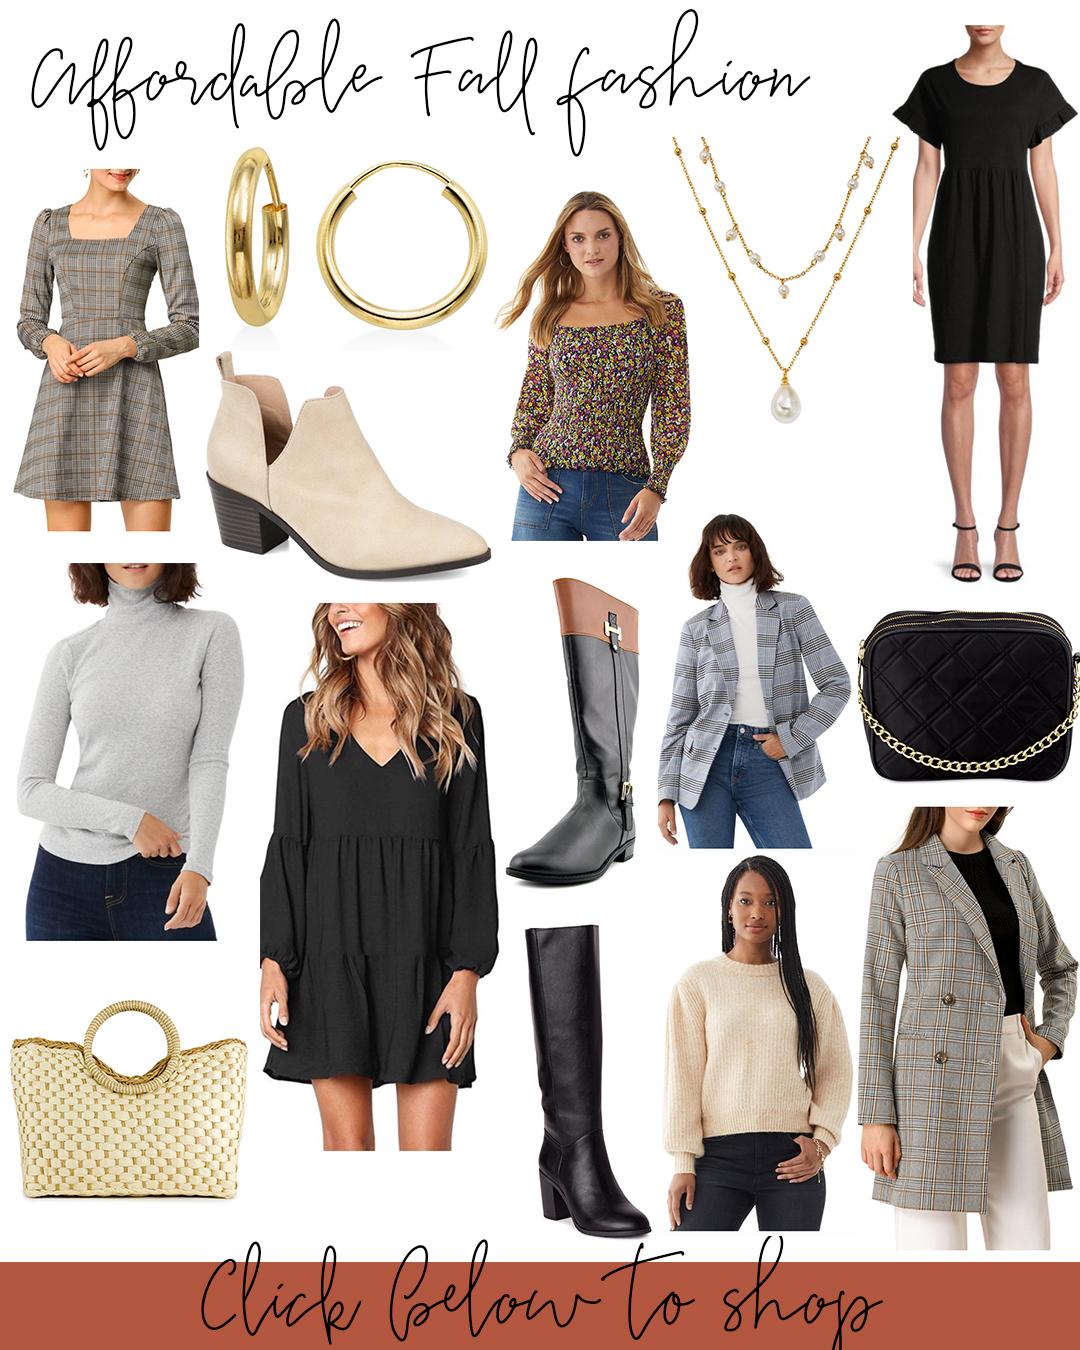 Affordable Fall Fashion 2020 - Little Black Dress Options. Dresses for under $15 and options for every budget. Accessories, booties, boots and more!